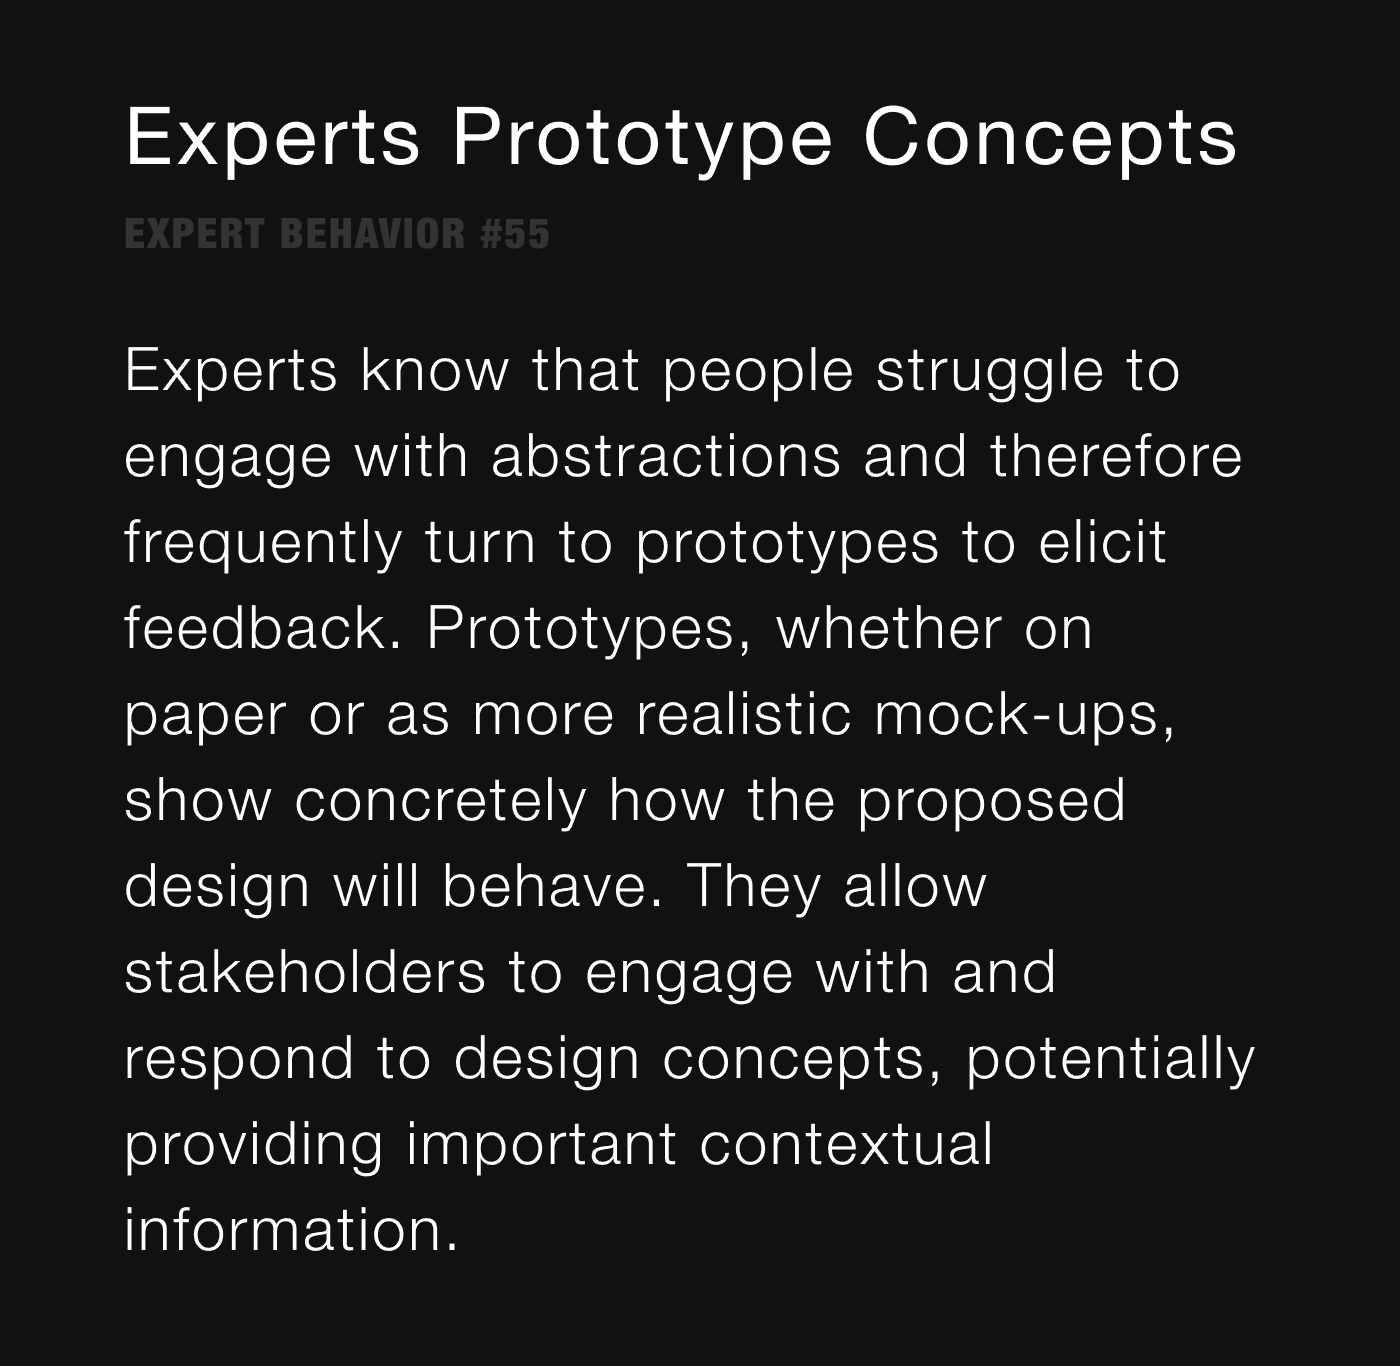 Experts Prototype Concepts - Experts know that people struggle to engage with abstractions and therefore frequently turn to prototypes to elicit feedback. Prototypes, whether on paper or as more realistic mock-ups, show concretely how the proposed design will behave. They allow stakeholders to engage with and respond to design concepts, potentially providing important contextual information.